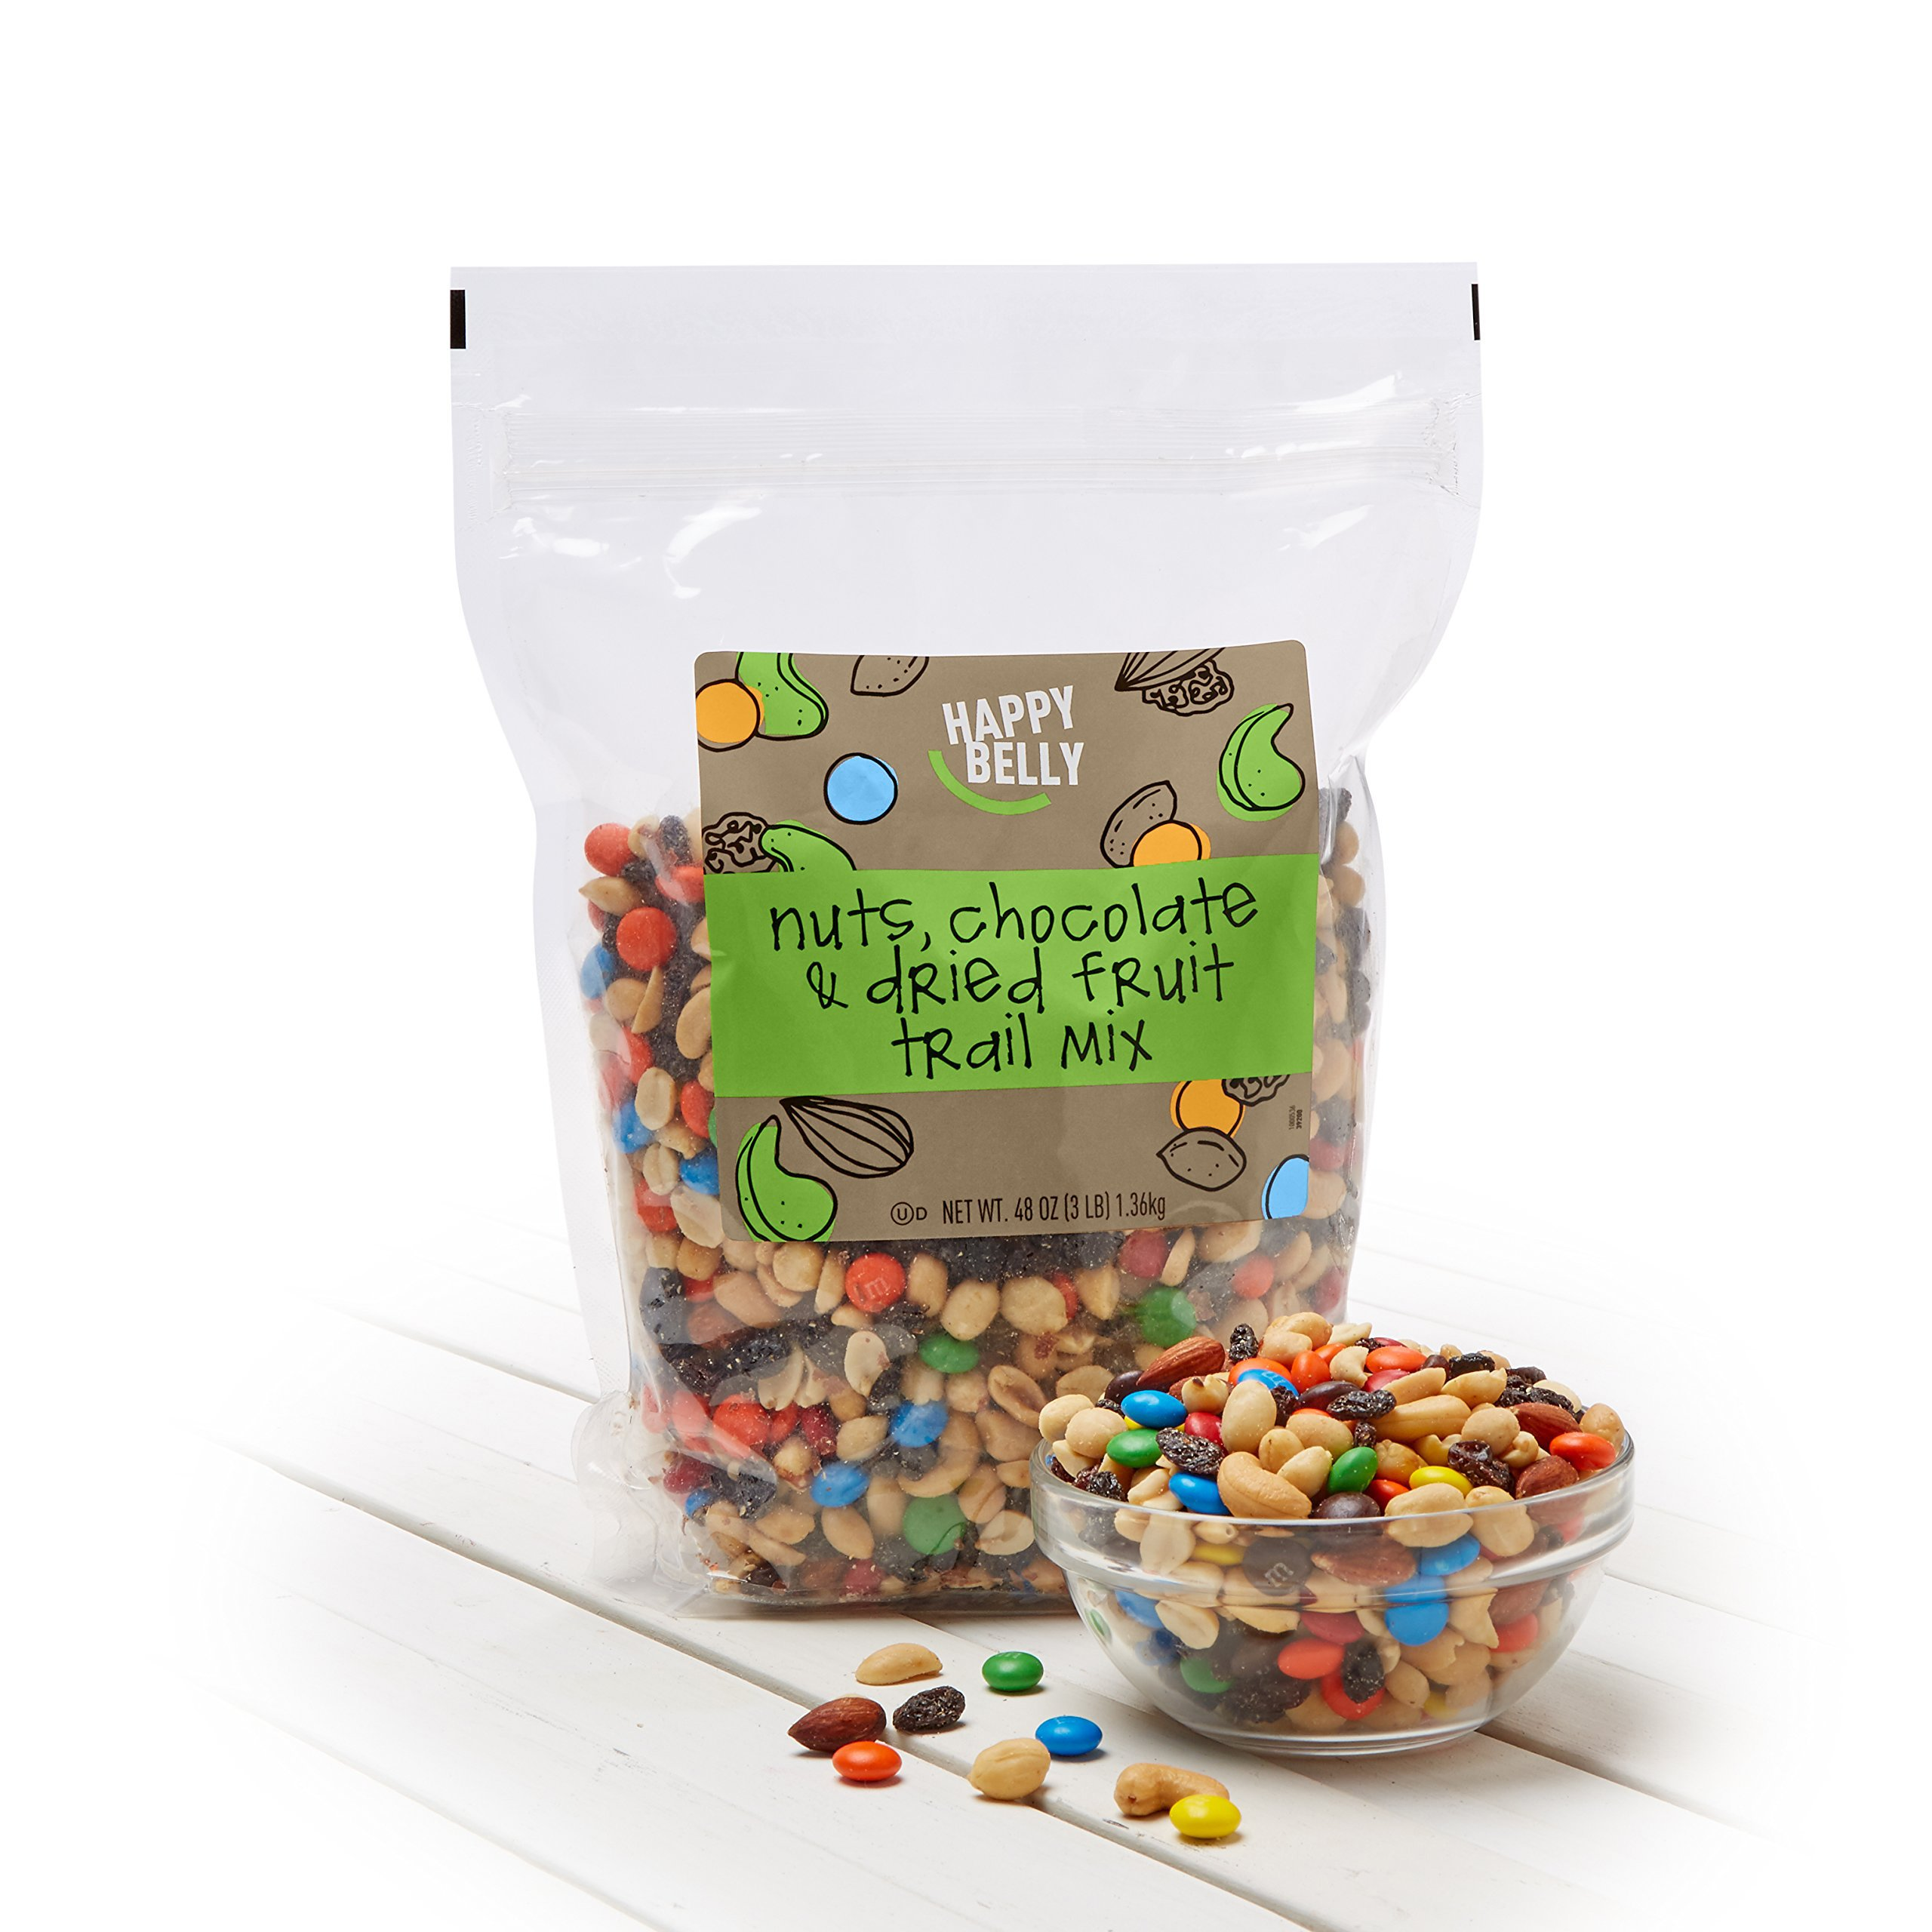 Amazon Brand - Happy Belly Amazon Brand Nuts, Chocolate & Dried Fruit Trail Mix, 48 ounce by Happy Belly (Image #2)